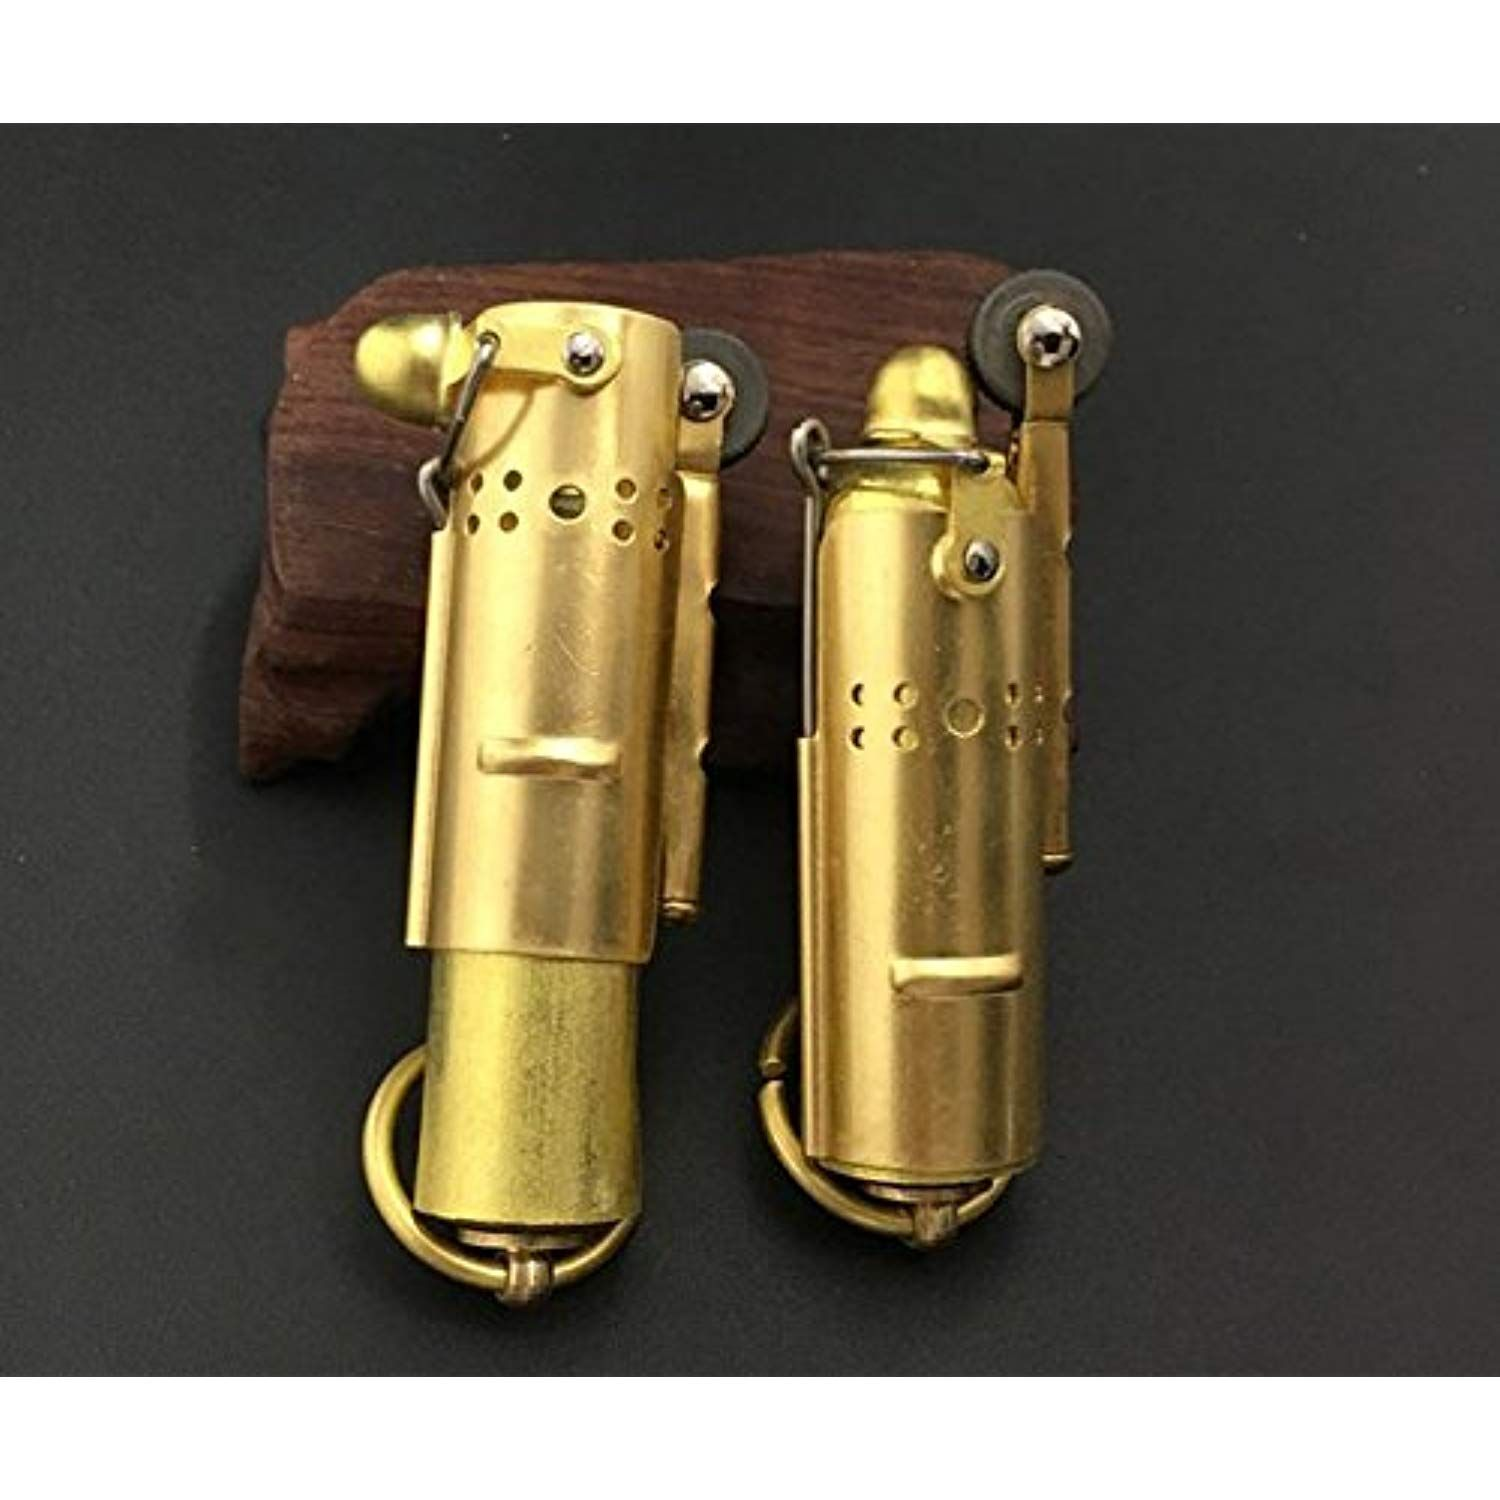 Kaminzubehör Nrw Youfeel Trench Lighter Replica - Solid Brass- Wwi - Wwii - Vintage Style 2 Pack >>> Details Can Be Found By Clicking On The… | Werkstatt Zu Hause, Feuerzeug, Metall